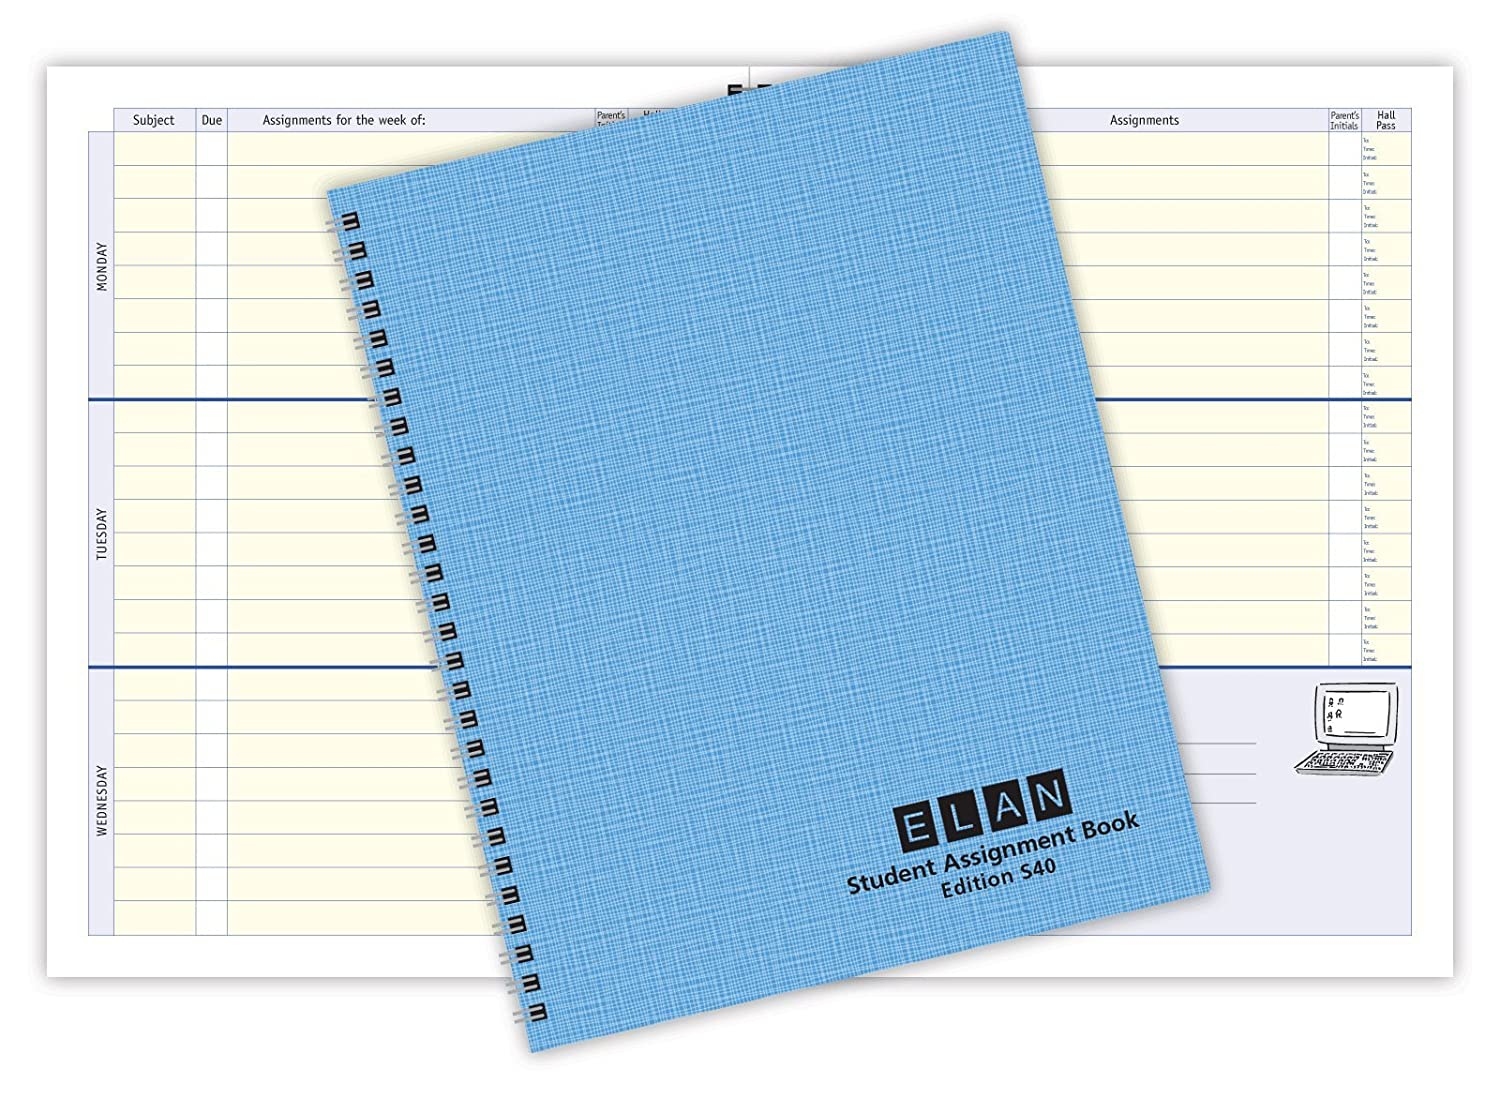 Amazon.com : Undated Student Assignment Book (S40) : Office Products